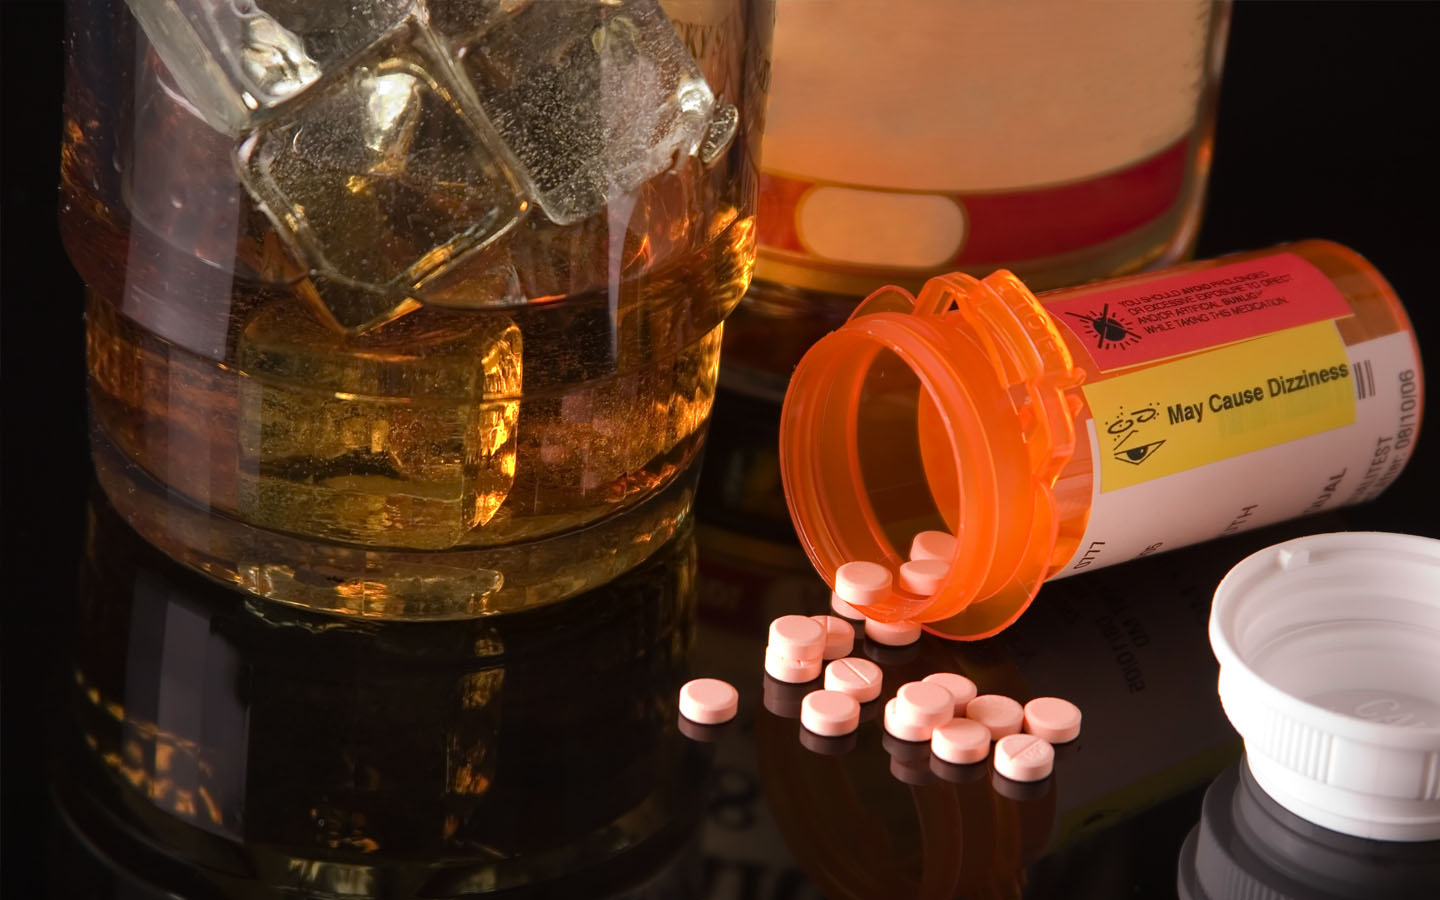 alcohol and drug dependence problems in saudi arabia King salman of saudi arabia arrived in france for a riviera holiday, with the closure of the beach in front of his villa incensing local residents a saudi prince and four others were reportedly arrested in lebanon monday after authorities found more than two tons of illegal drugs, including cocaine and.